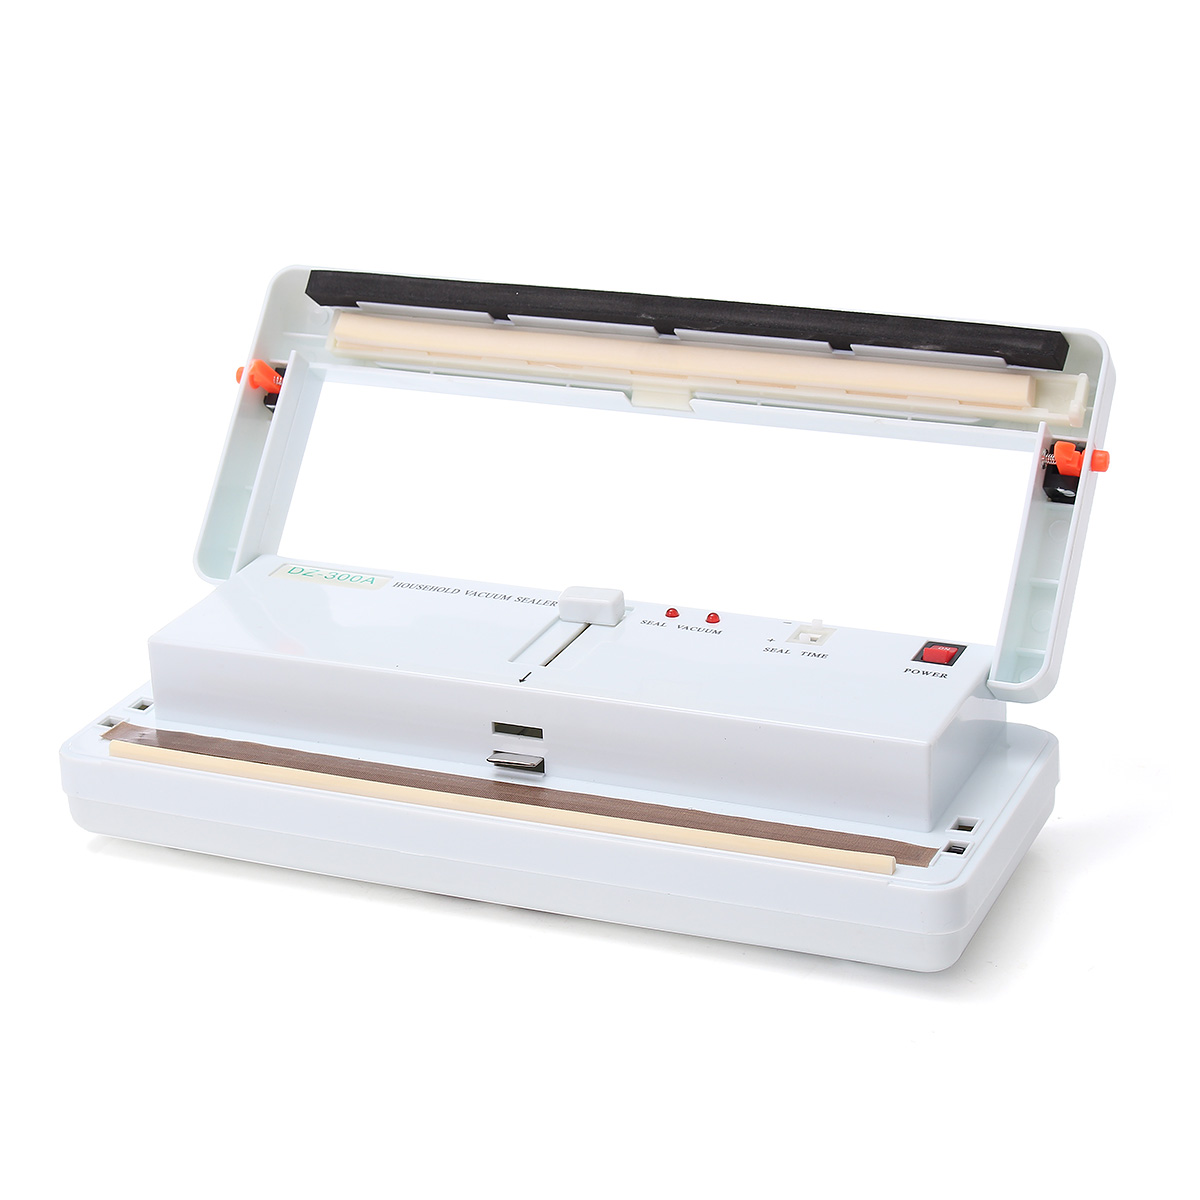 220V 50Hz Food Saver Vacuum Sealers System Kitchen Storage Bag Packaging Machine 40-28mm